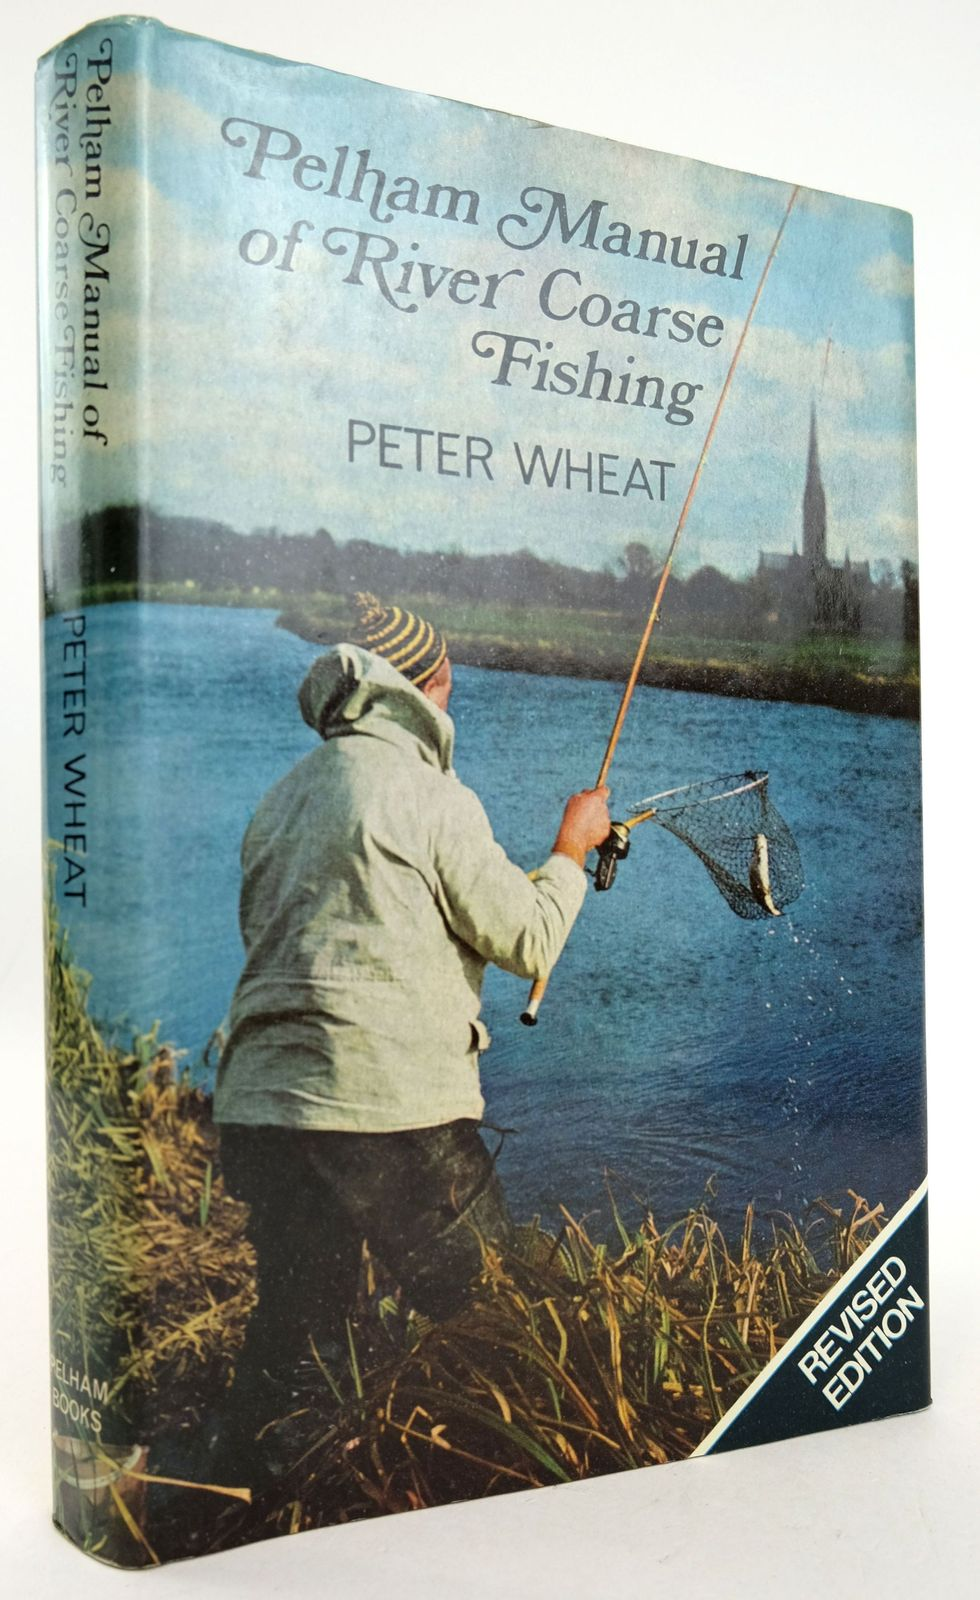 Photo of PELHAM MANUAL OF RIVER COARSE FISHING written by Wheat, Peter published by Pelham (STOCK CODE: 1819194)  for sale by Stella & Rose's Books